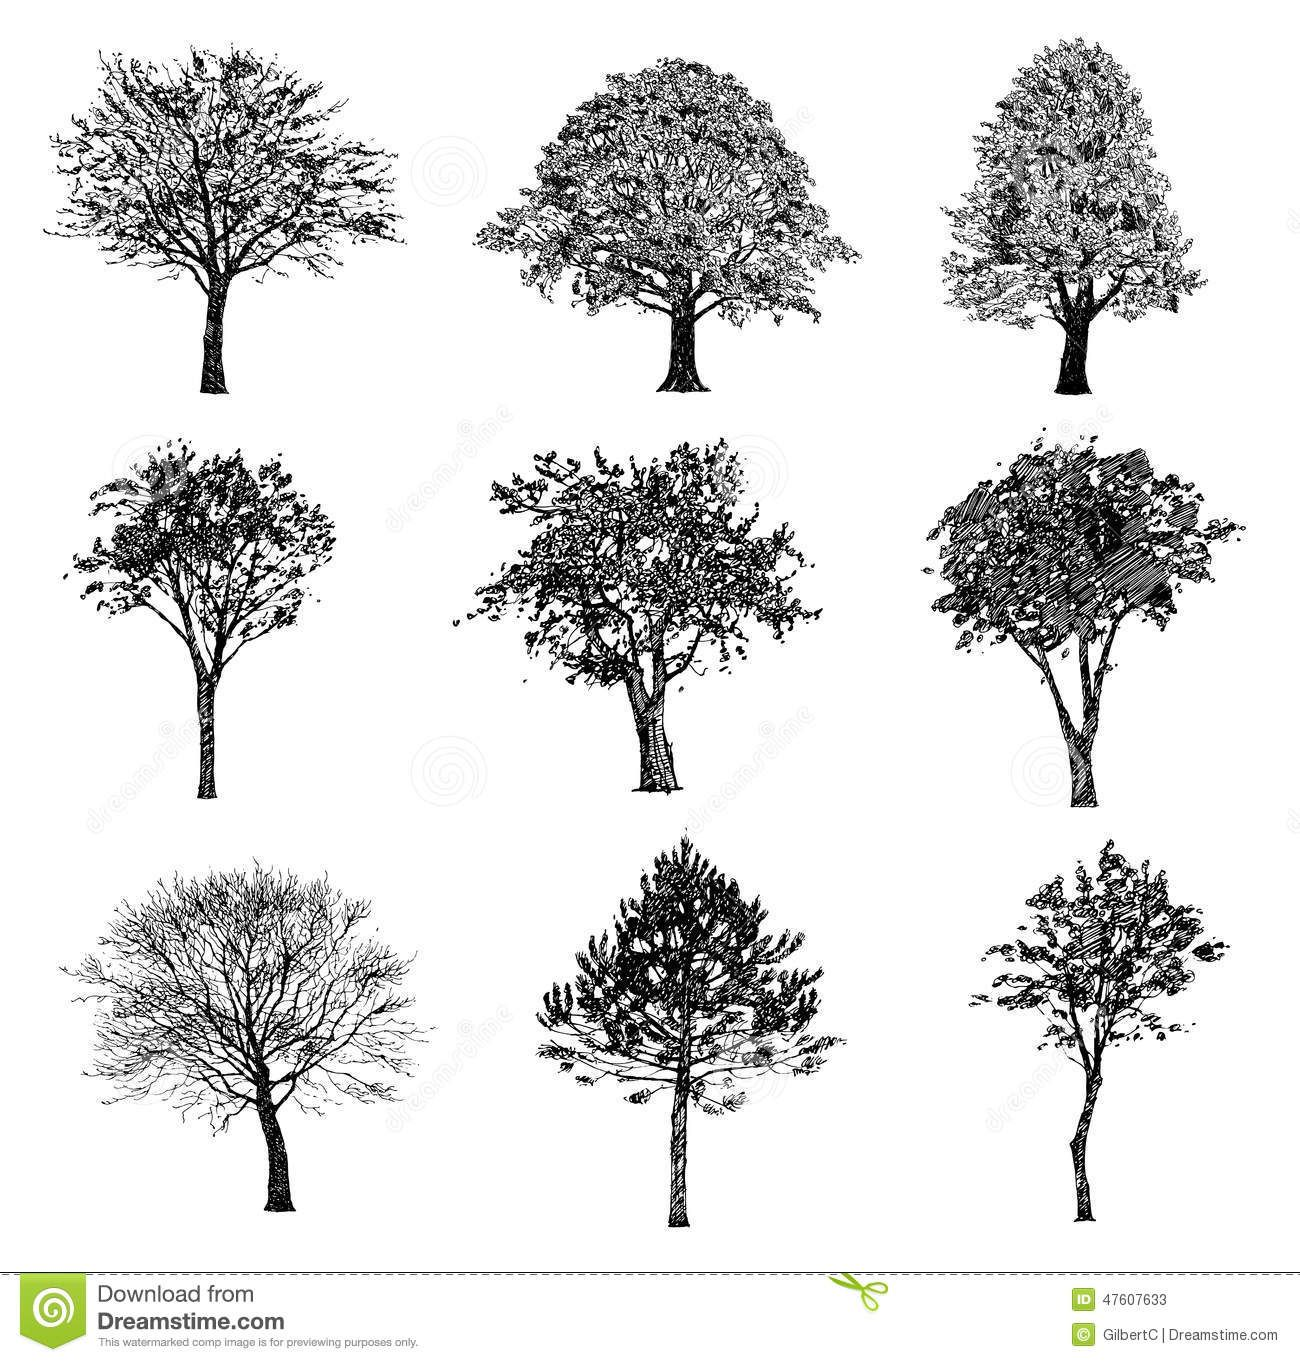 How To Sketch Realistic Trees